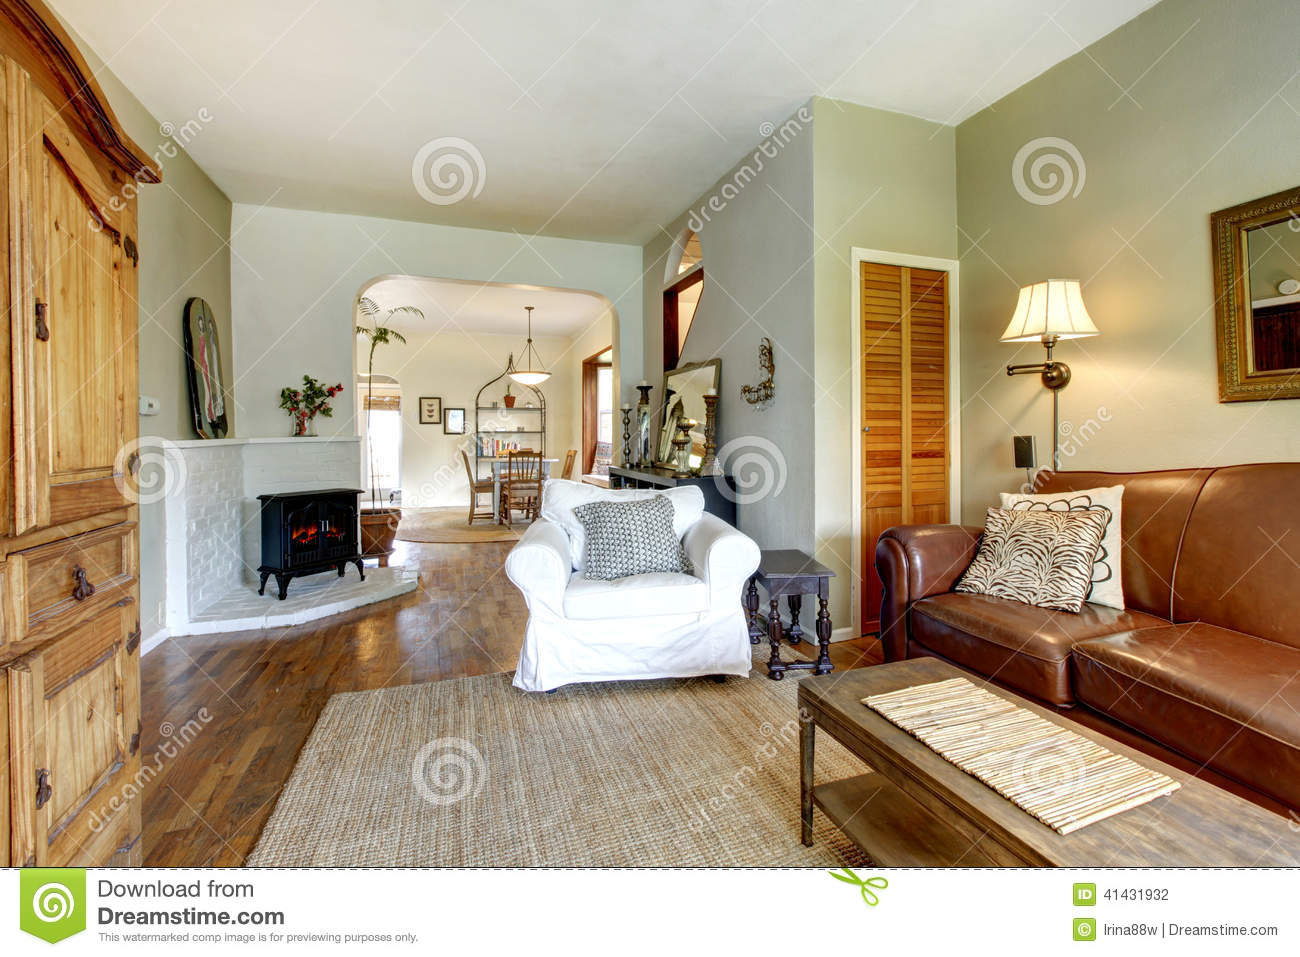 Living room in old house with antique furniture stock for Classic house furniture galleries